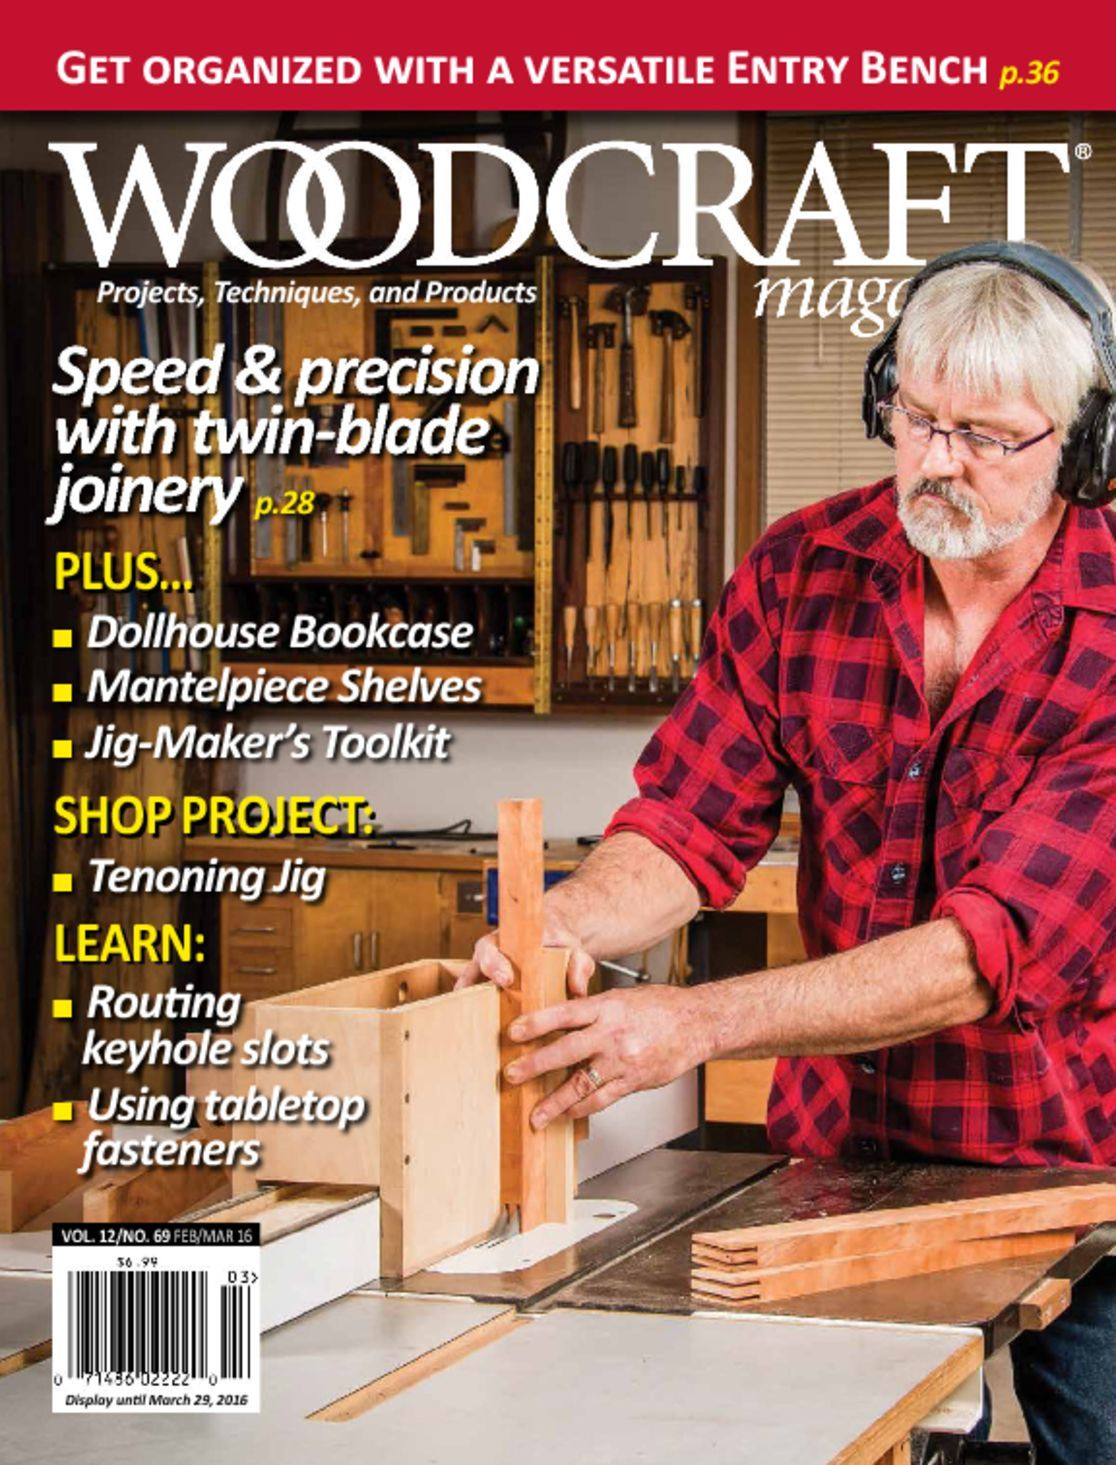 Woodcraft Magazine   Projects, Techniques, and Products - DiscountMags.com